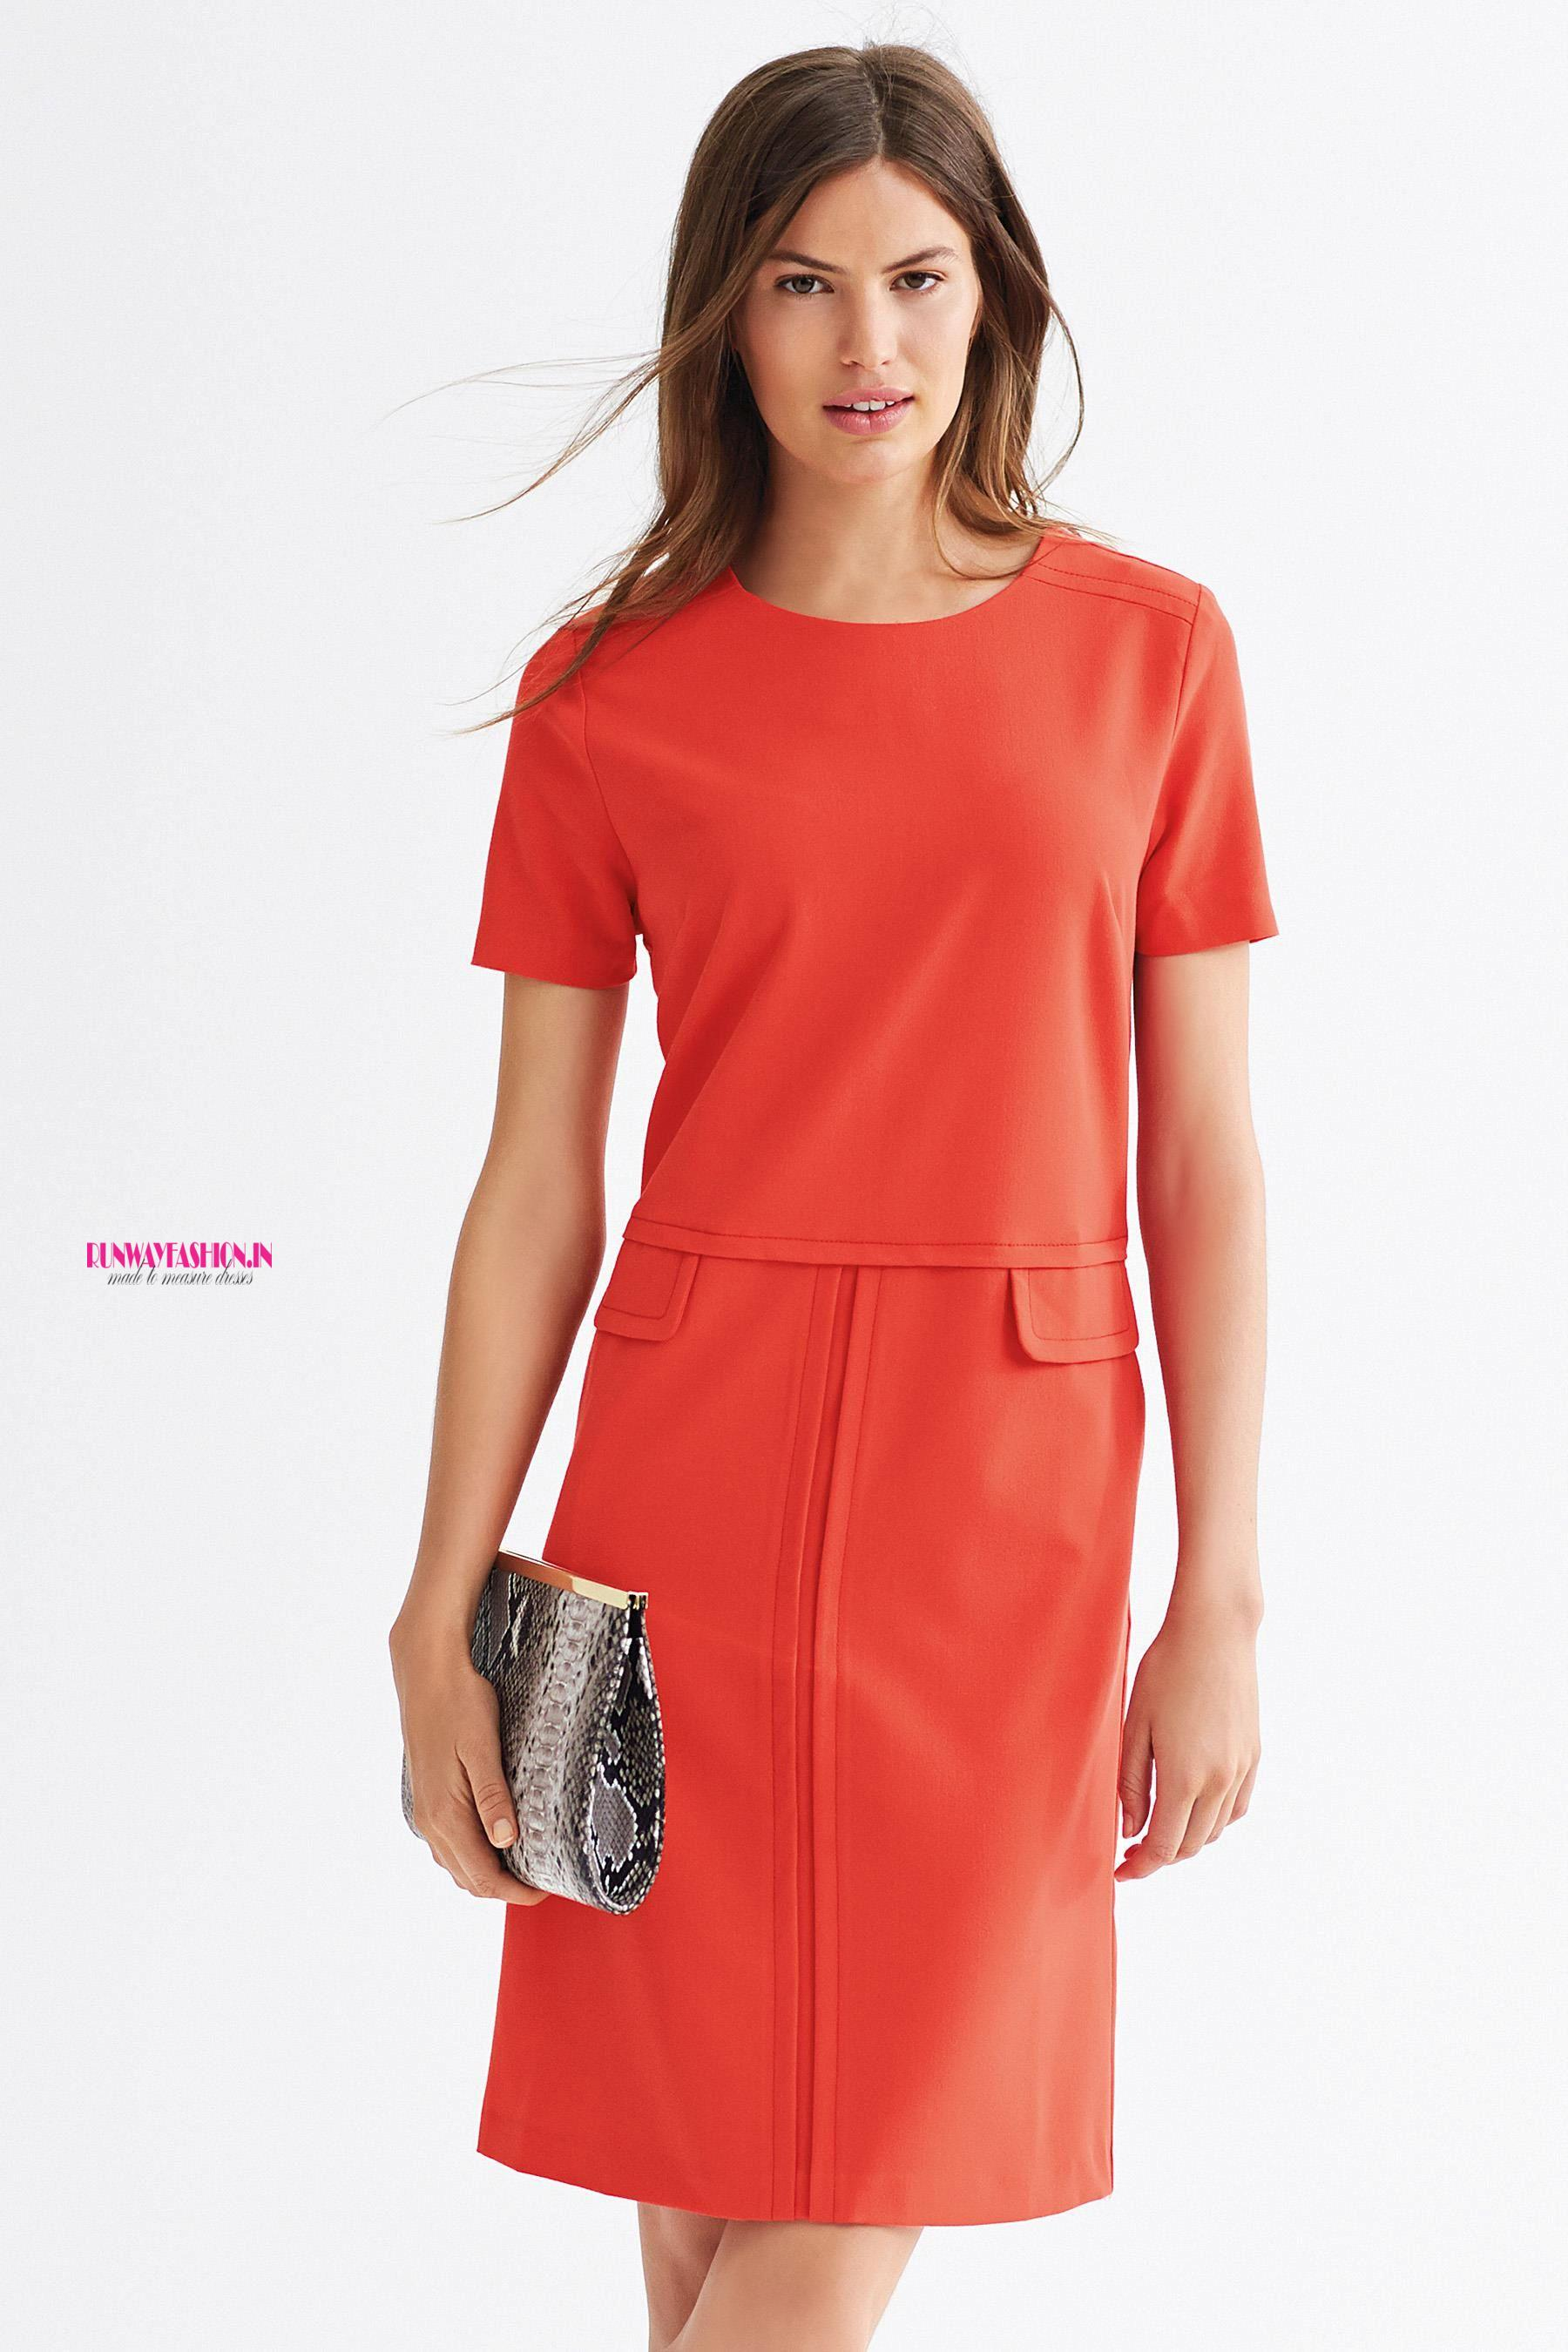 office dresses - Runway Fashion - Tailor made dresses, Cocktail ...